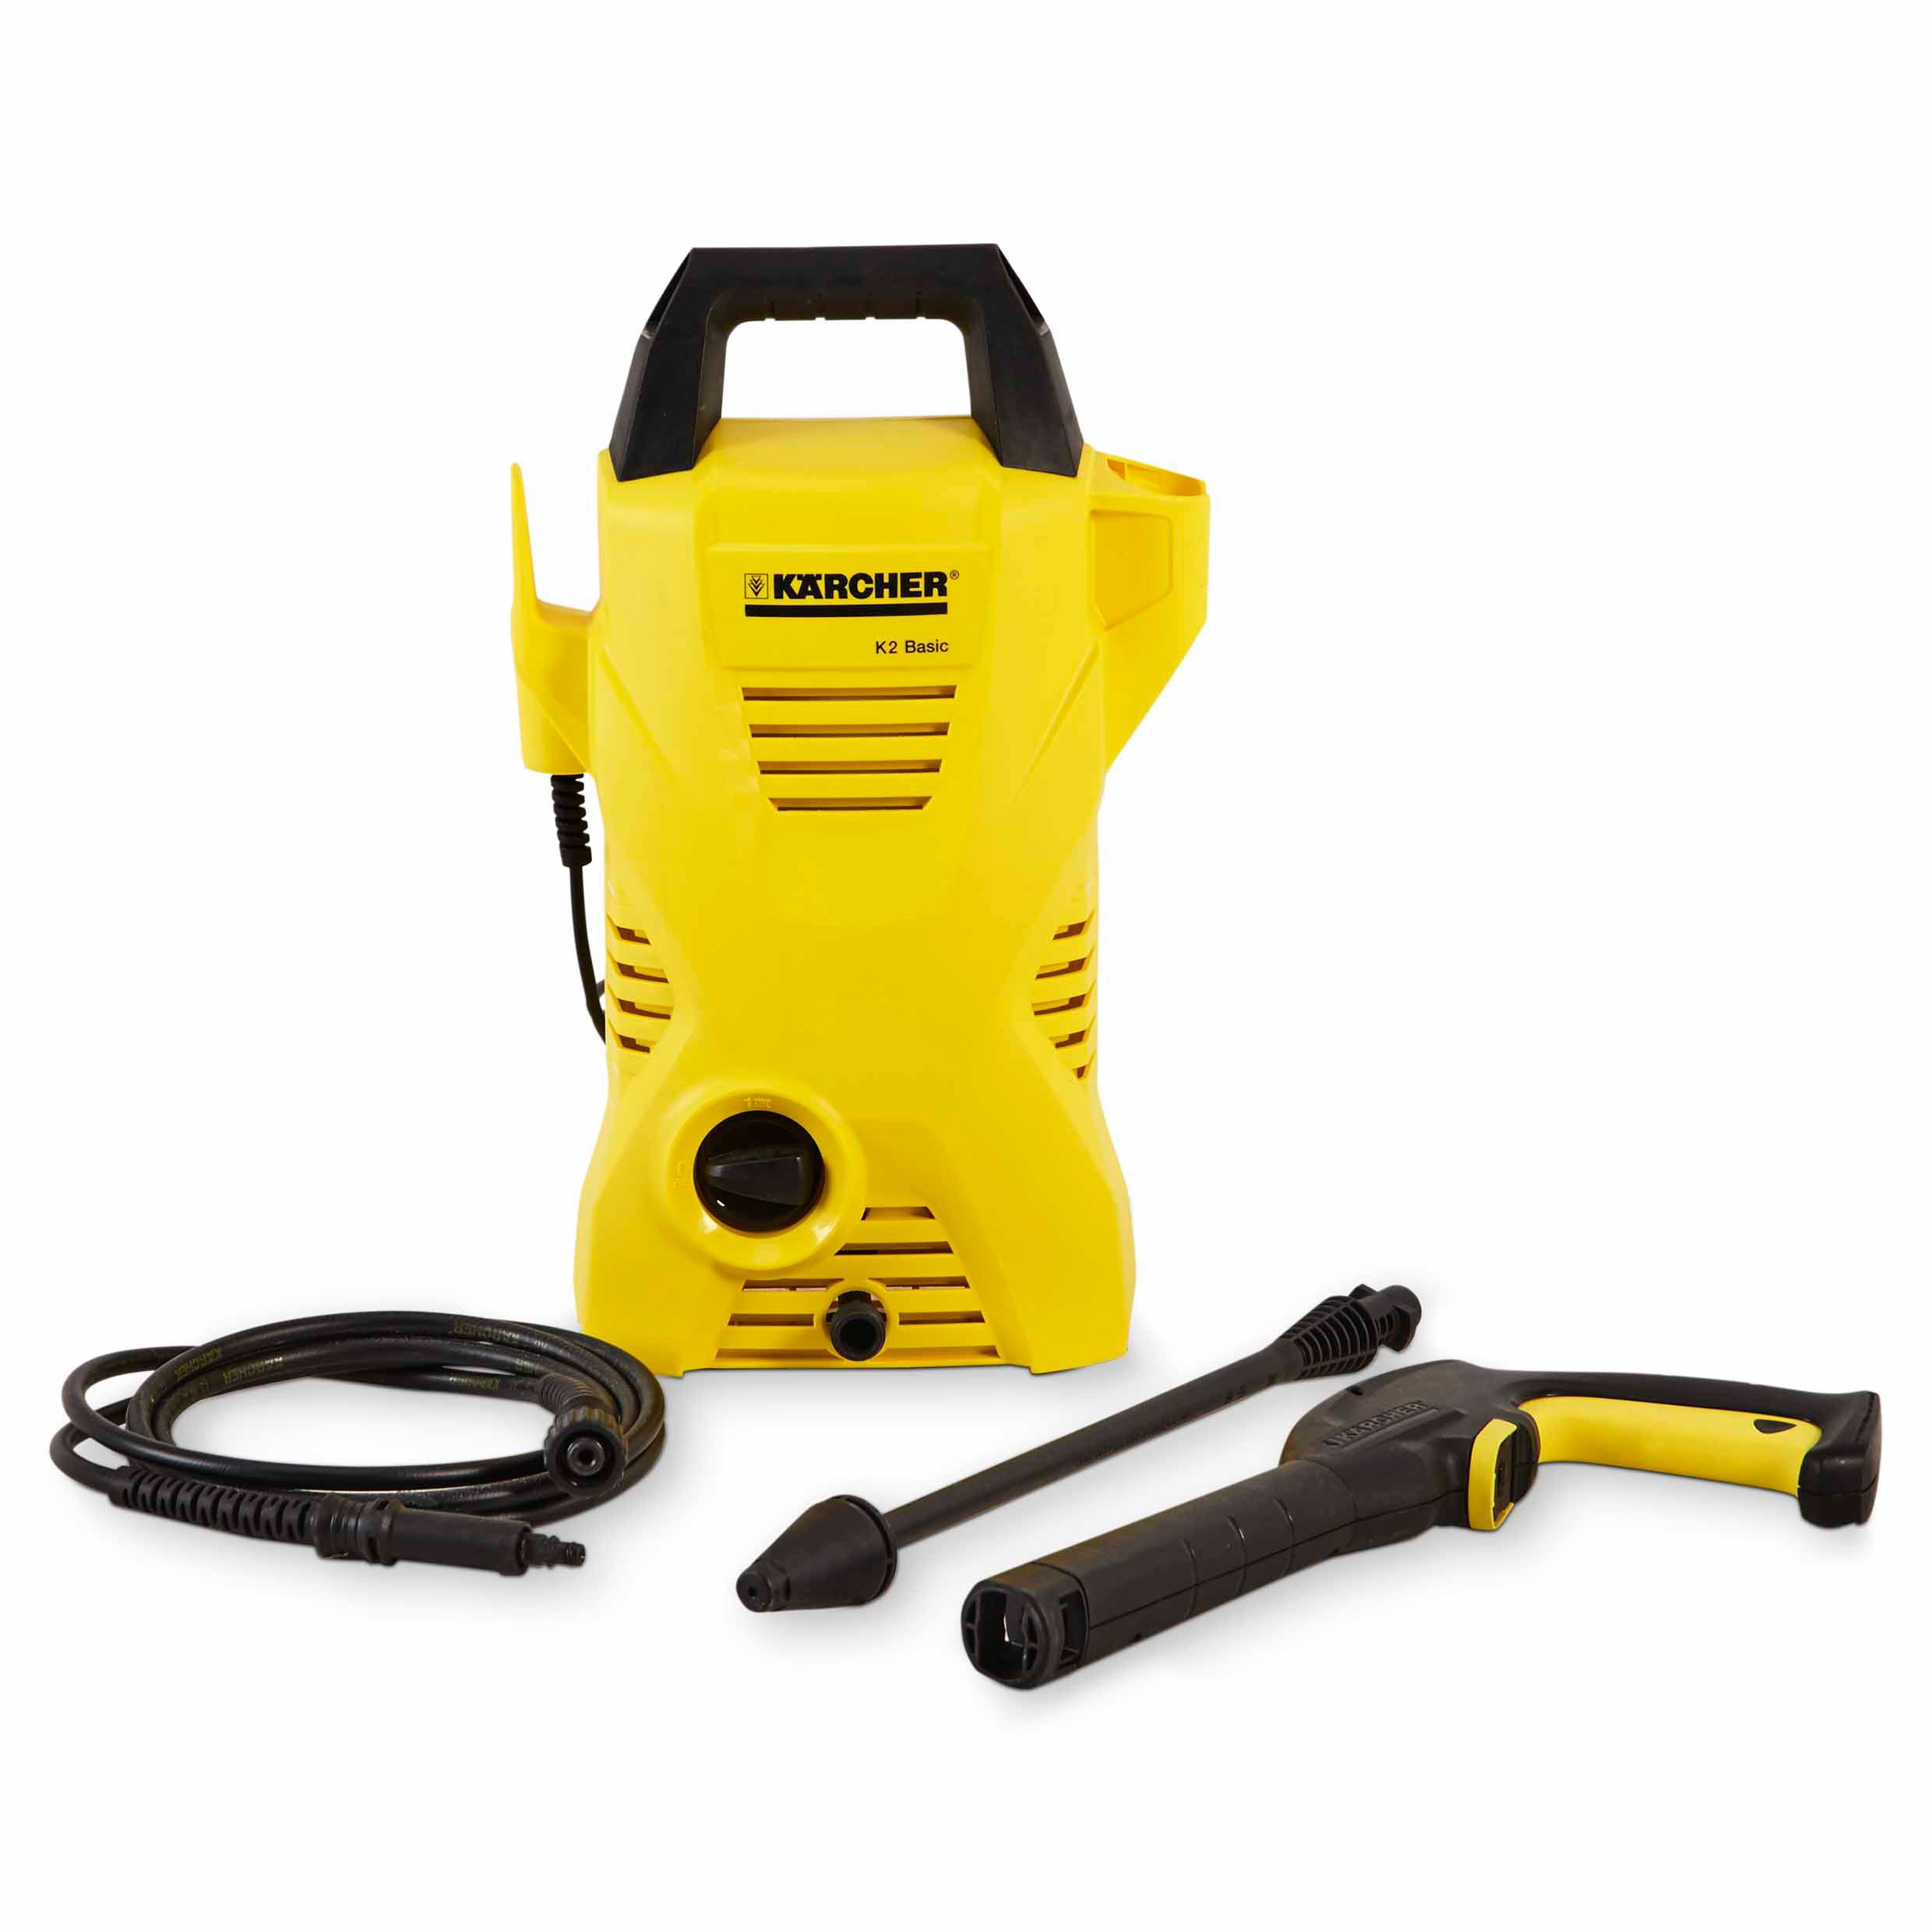 Karcher K2 Basic Pressure Washer Departments Diy At B Amp Q